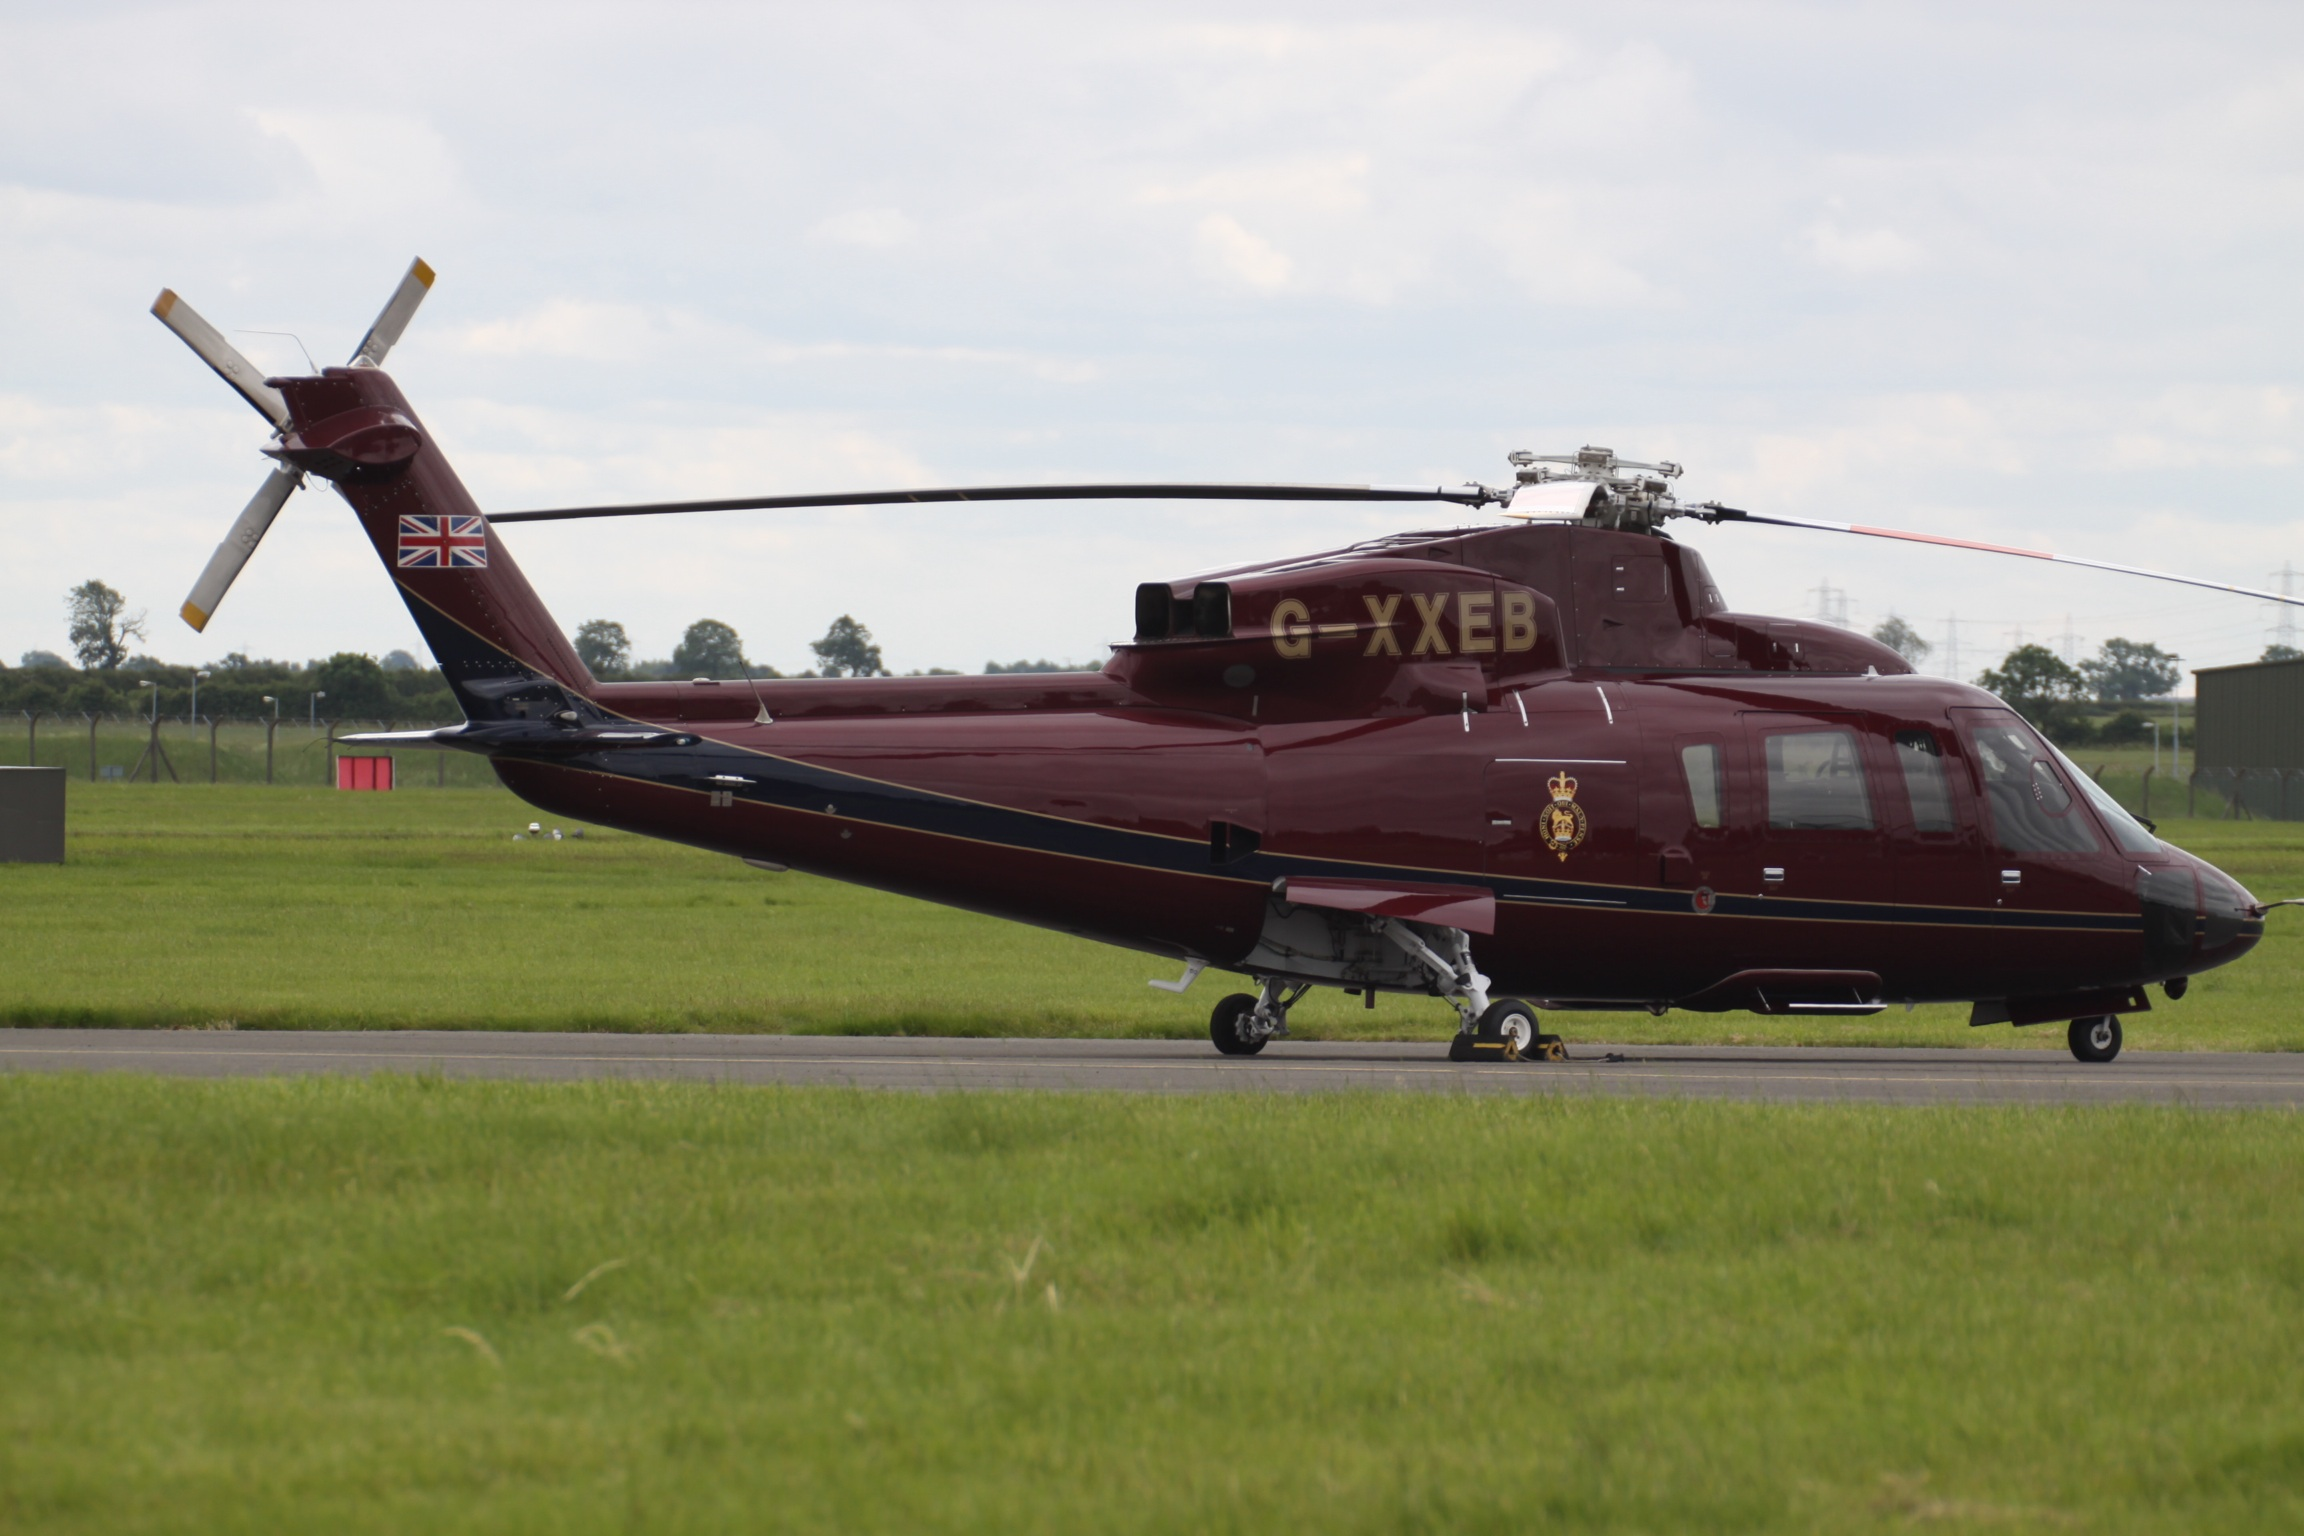 File:G-XXEB Sikorsky S-76C-2 The Queens Helicopter Flight (8596392766 ...